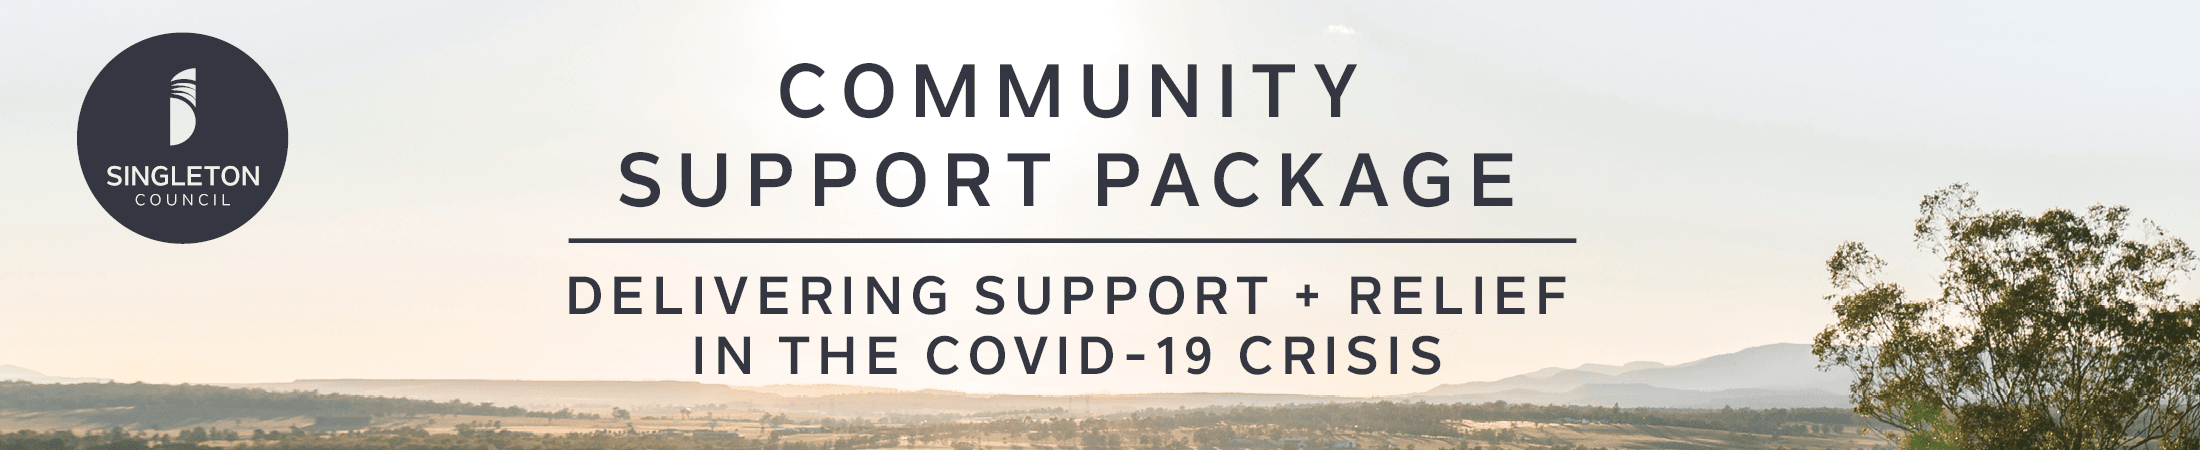 Community Support Package interior banner